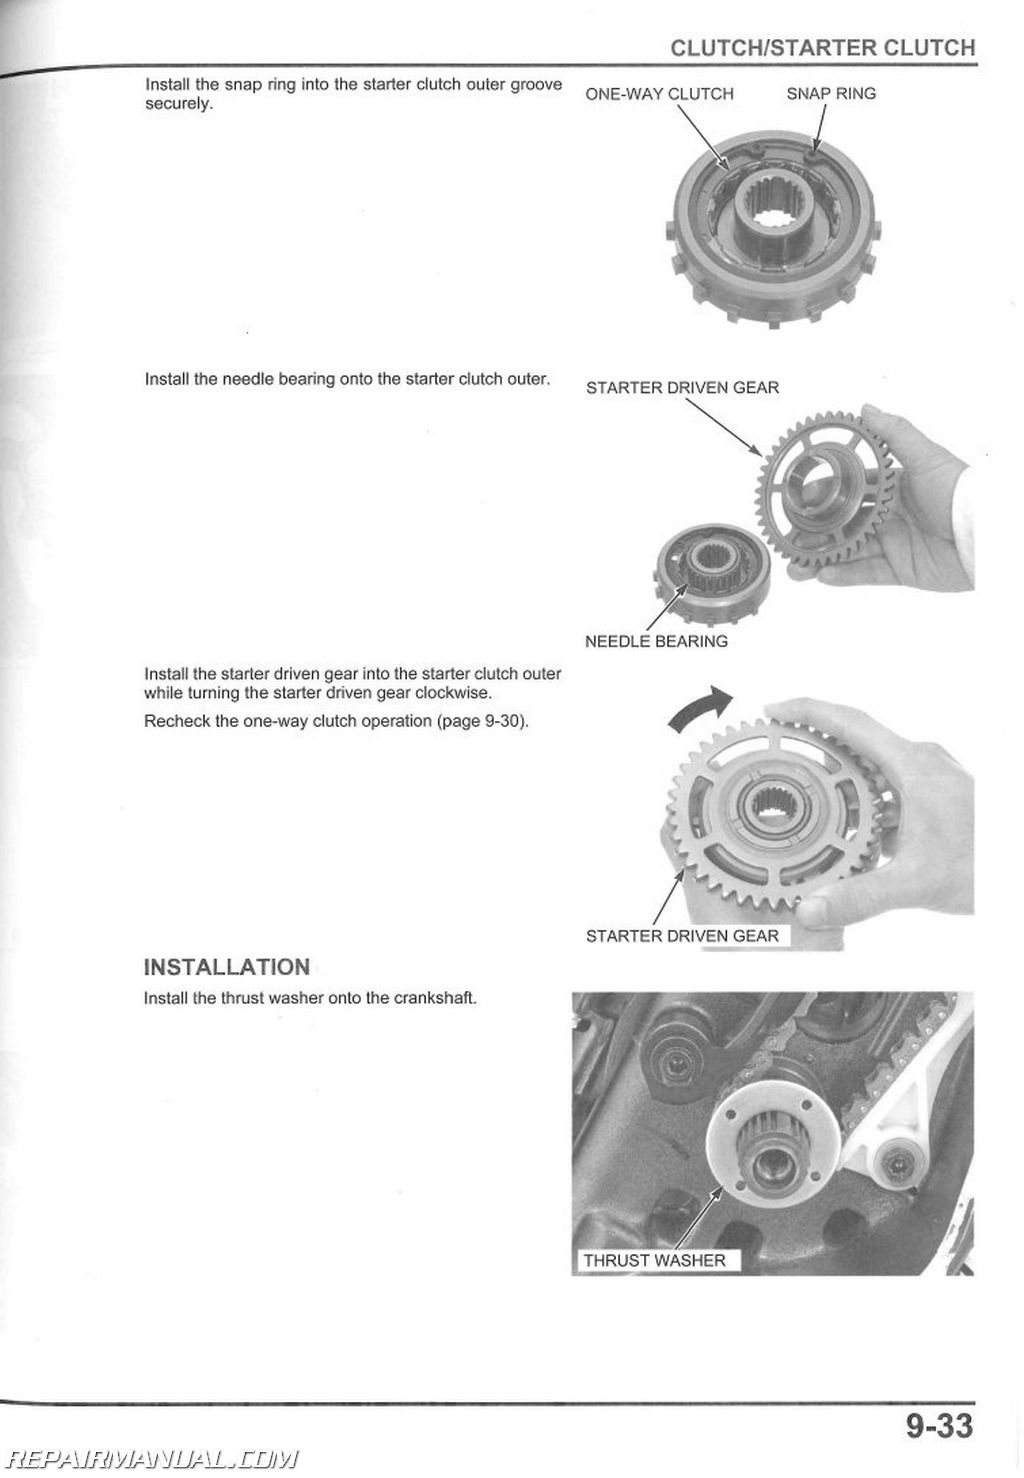 2011 2015 honda cb1000r motorcycle service manual repair manuals 2011 2014 honda cb1000r service manual page 2